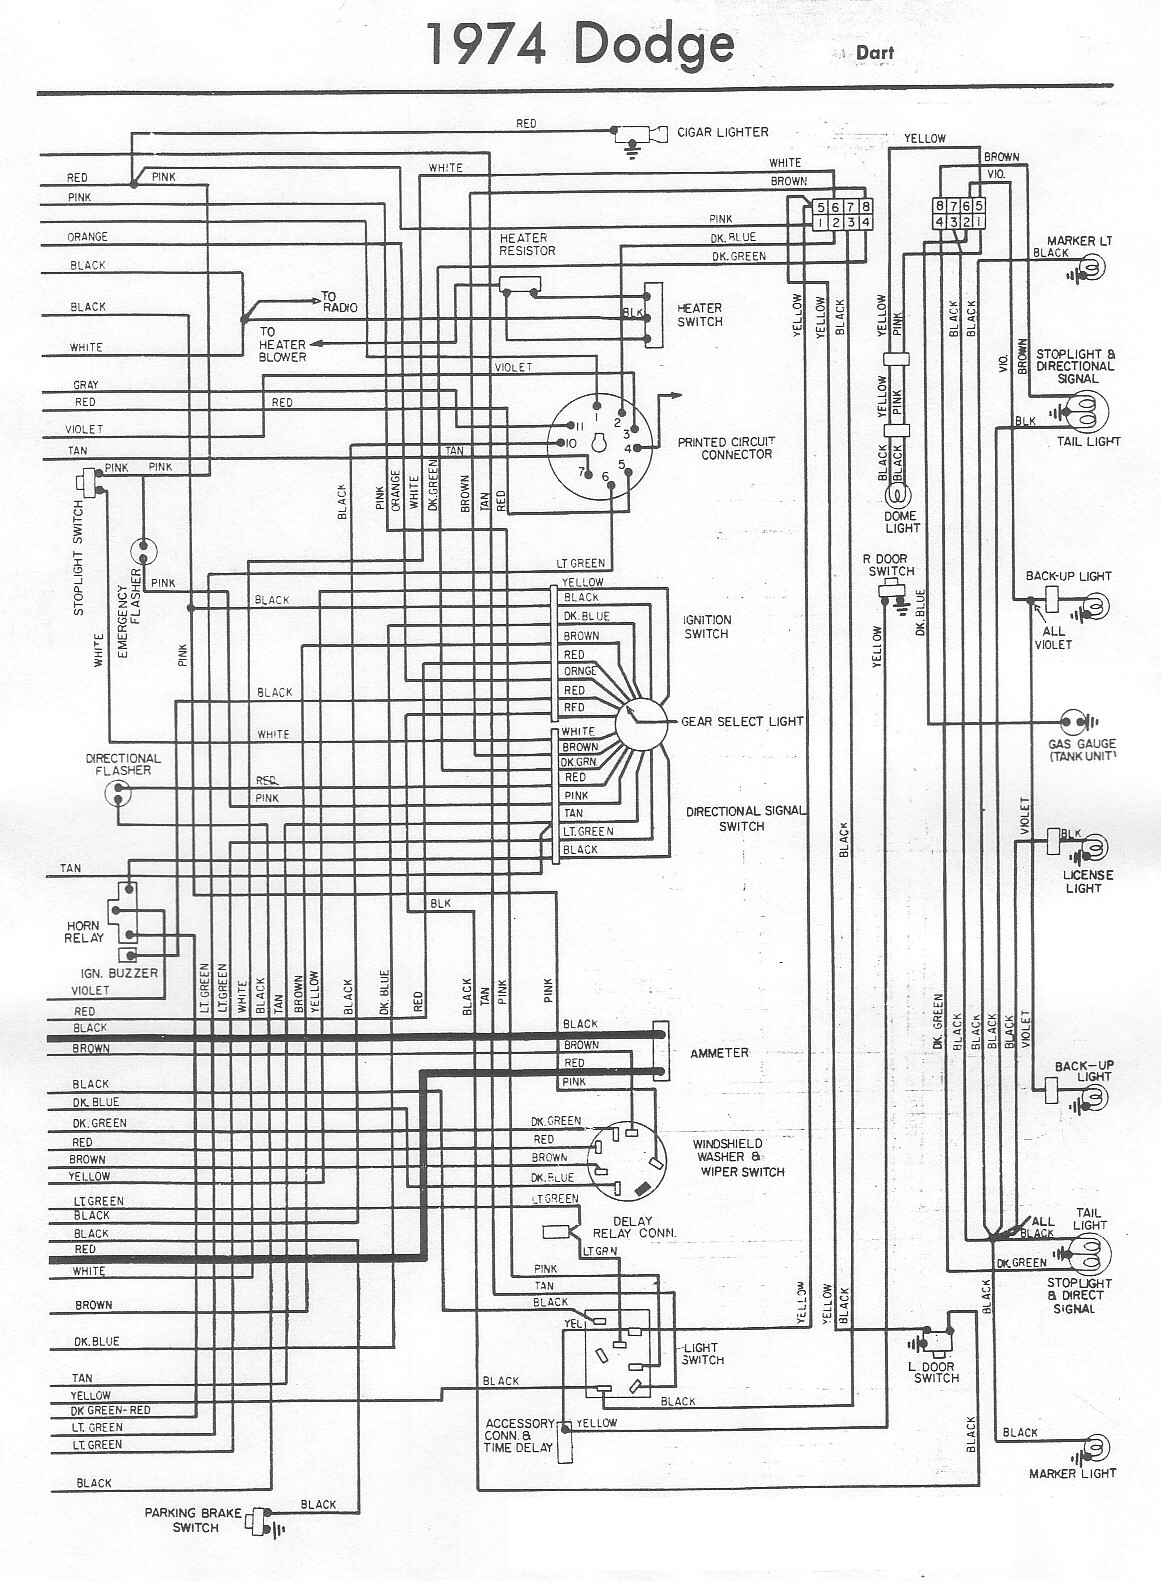 1971 dodge dart swinger wiring diagram 38 wiring diagram images wiring  diagrams gsmportal co 1974 dodge dart wiring diagram 1974 dodge dart wiring  harness